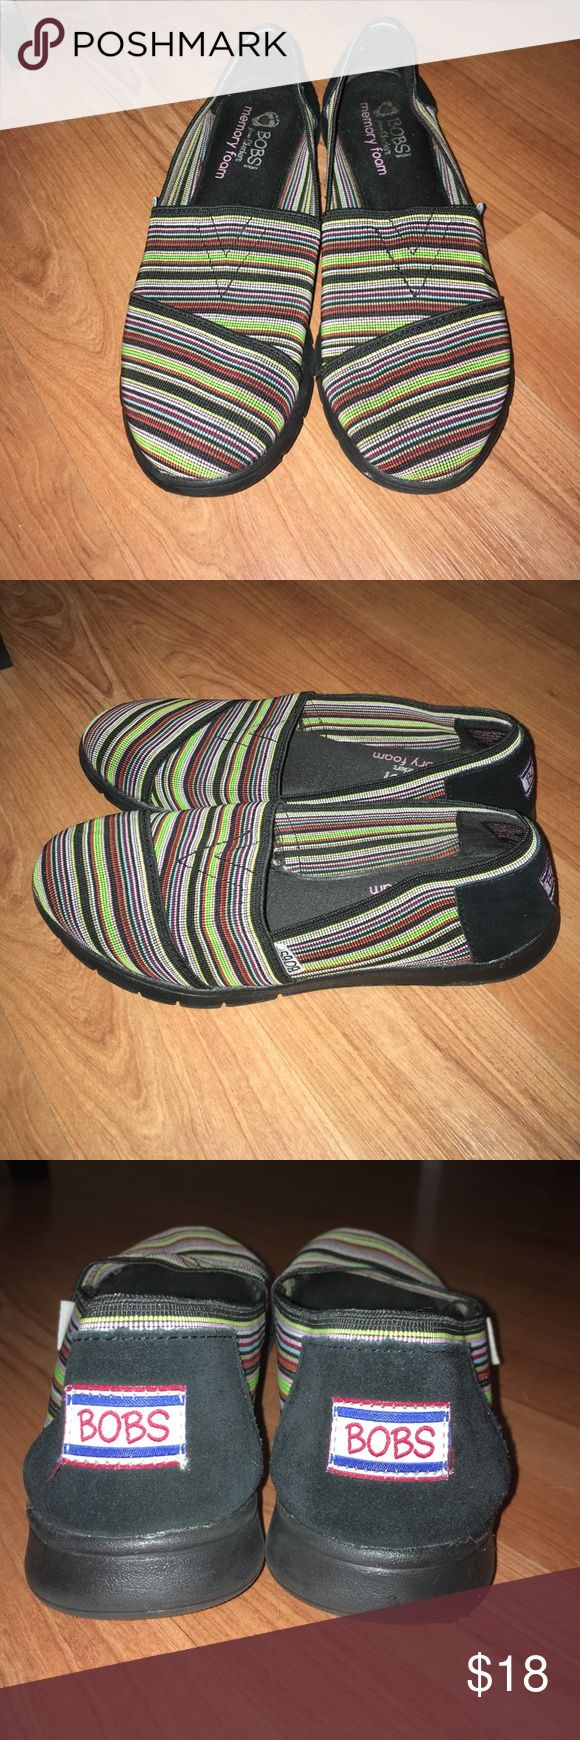 Bobs sport from Skechers memory foam 8.5 used Used still good condition. The memory foam is so comfortable. Multi colored stripes black, yellow,pink,white, neon green, red, brown, baby blue, and a few other colors. A little bit of faded logo inside where foot sits. Bobs Shoes